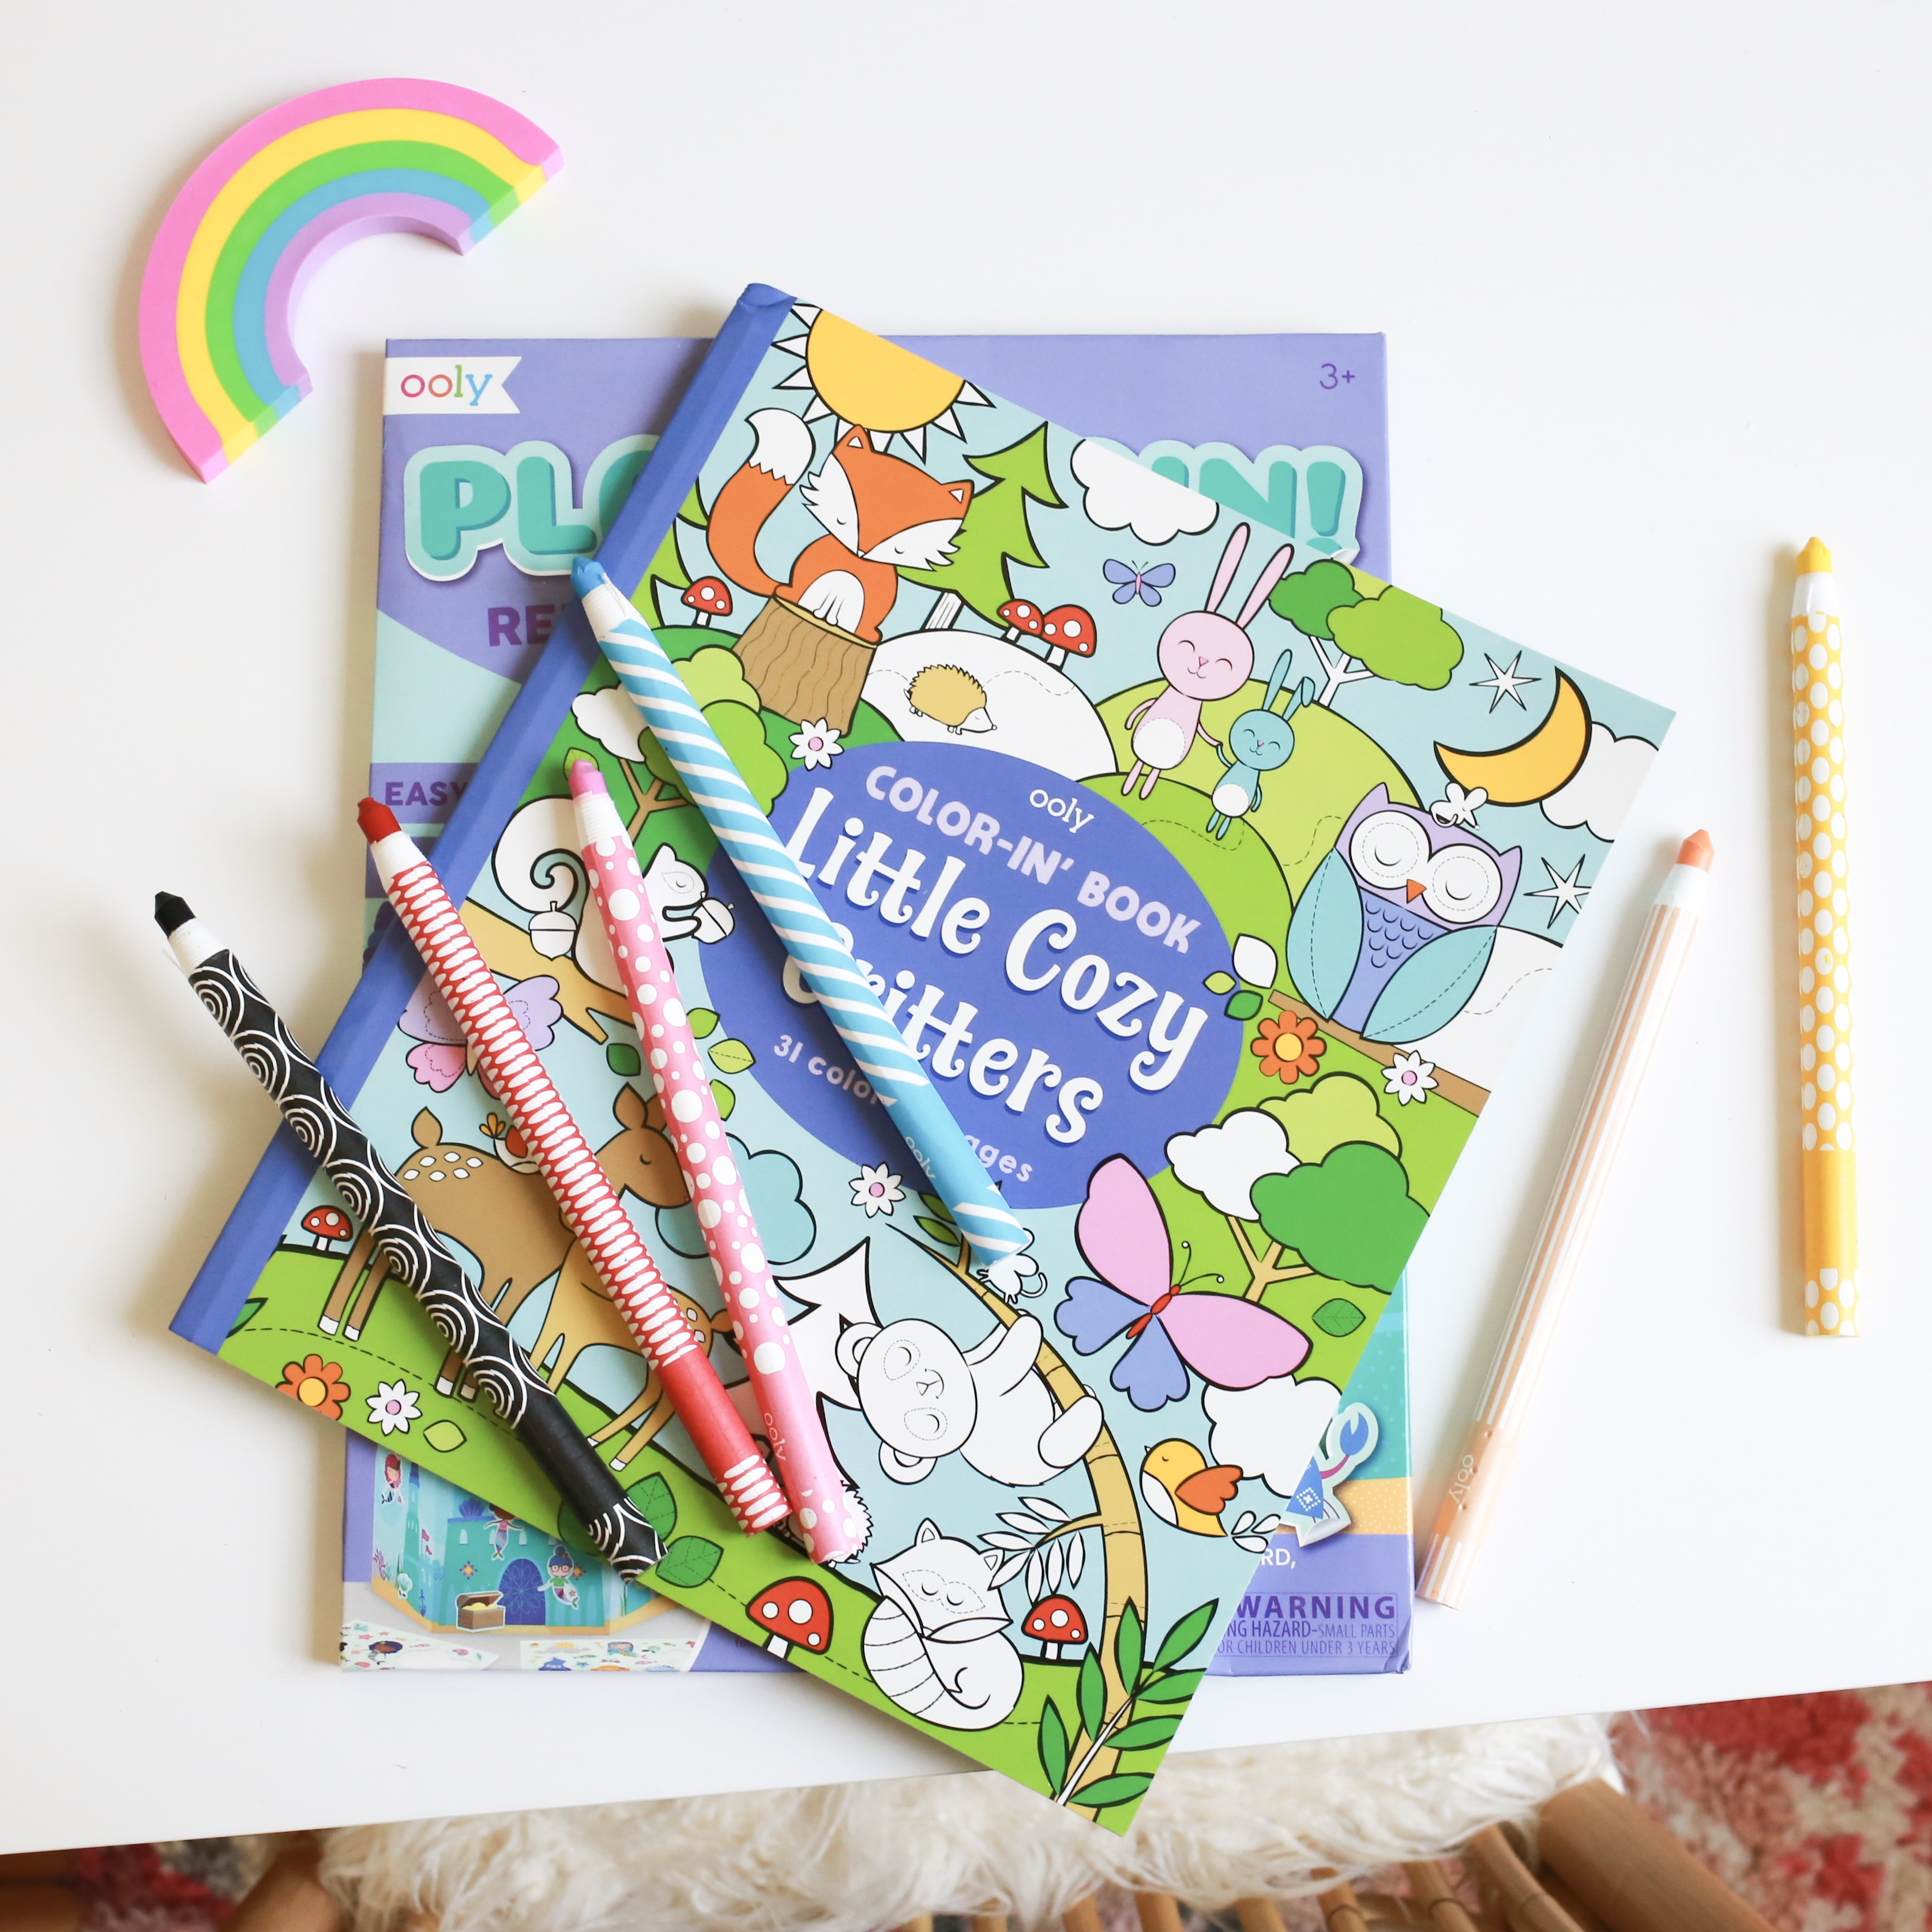 Ooly art supplies, coloring books for kids